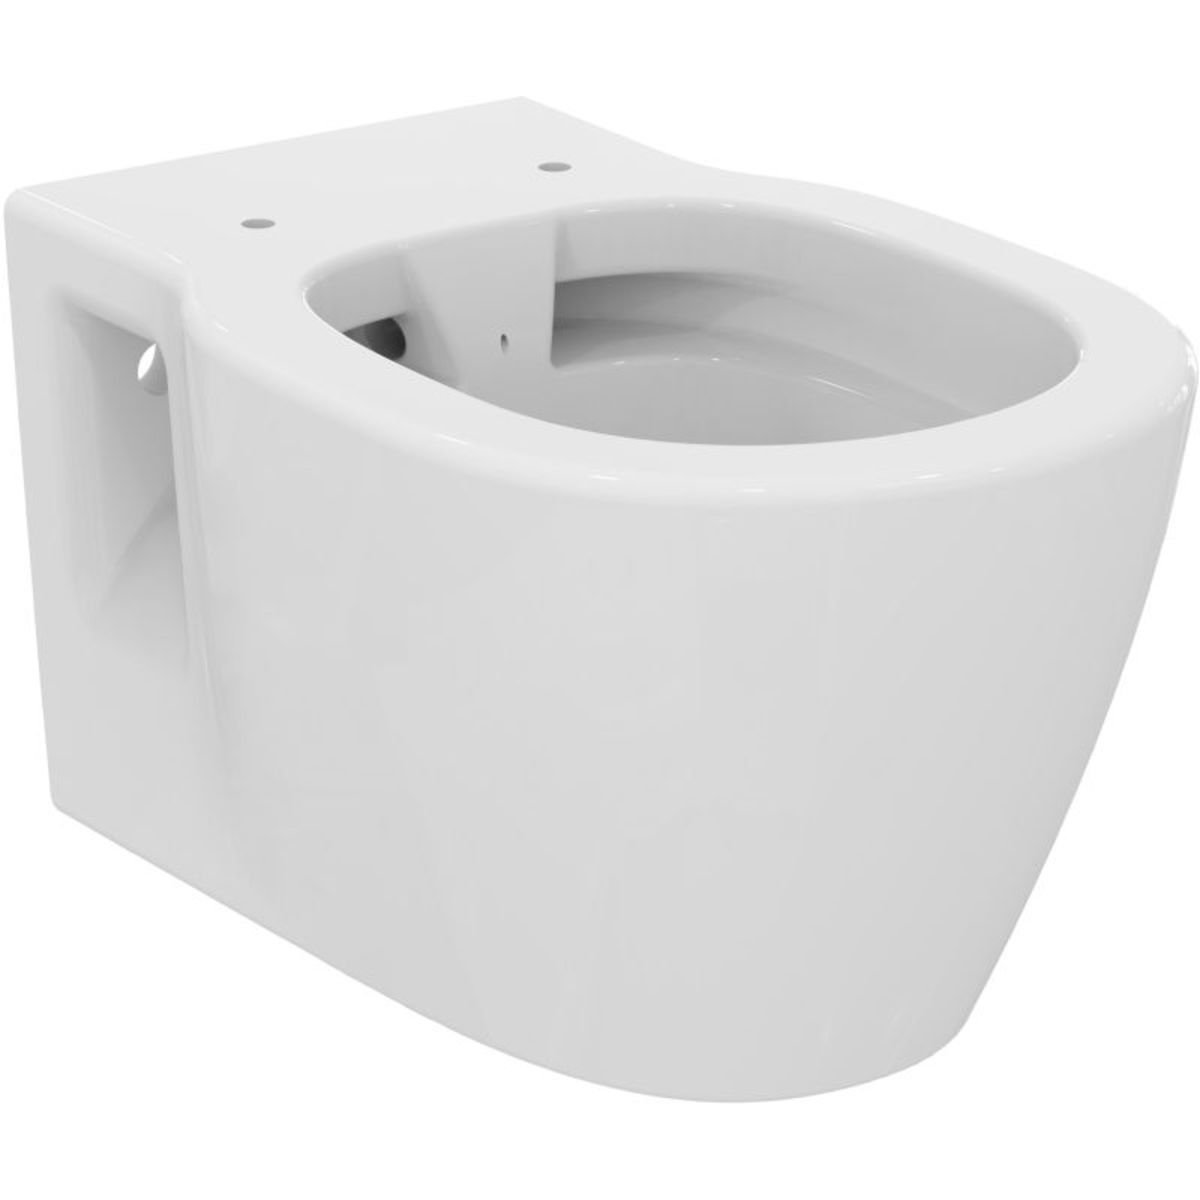 Wc Suspendu Ideal Standard : ideal standard connect wc suspendu 54cm sans bride blanc ~ Pogadajmy.info Styles, Décorations et Voitures